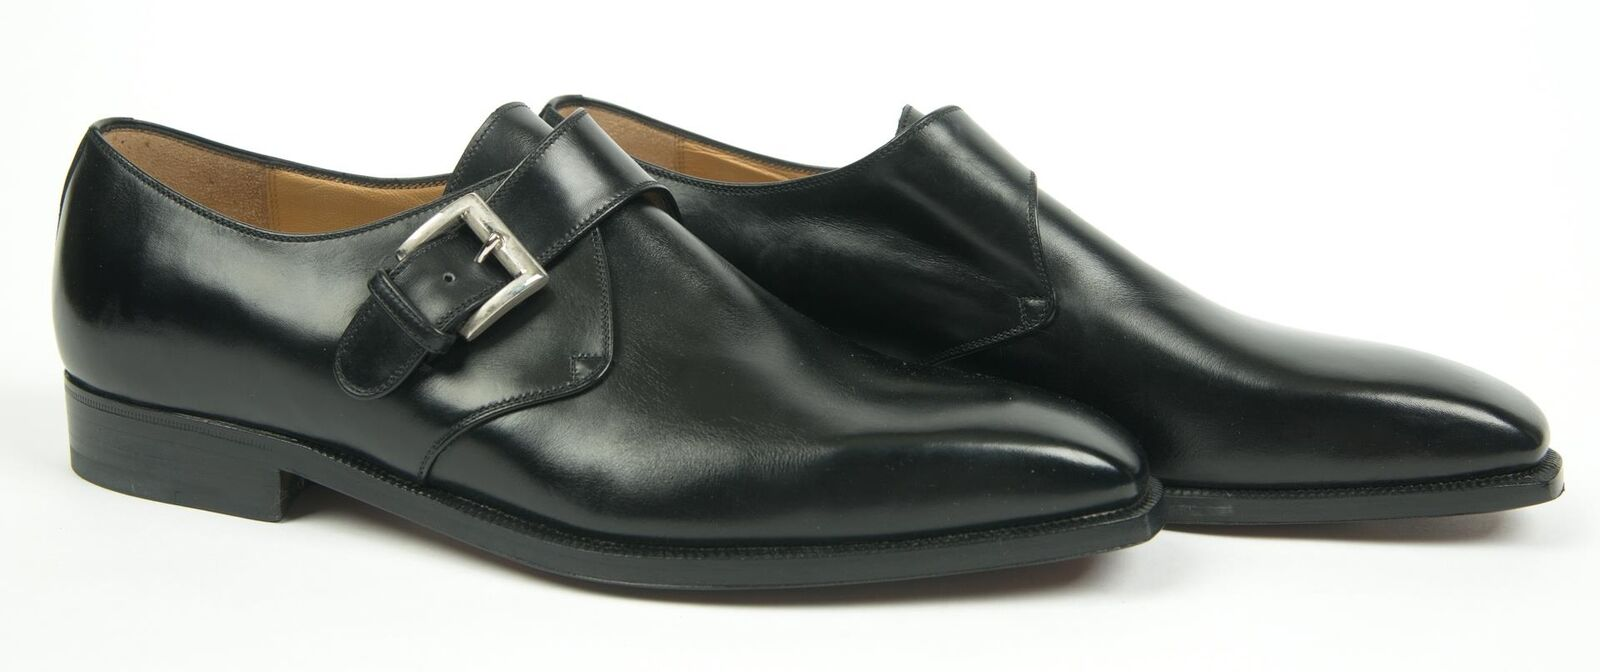 Brioni  1,000 NIB nero Leather Single Monk Strap Dress scarpe 10 US